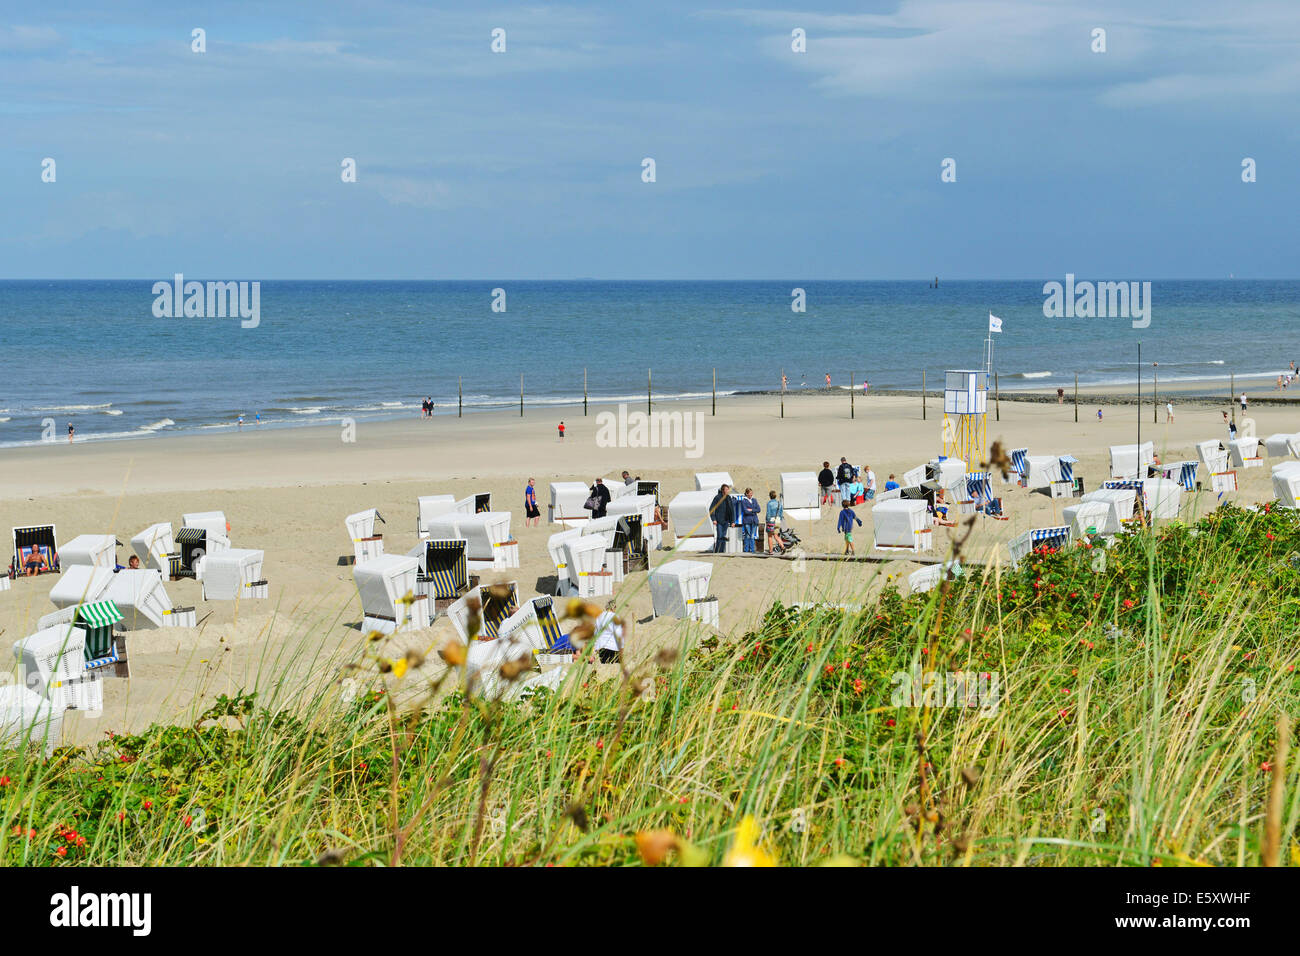 Best beach chair 2013 - Stock Photo Wangerooge S Beach With Beach Chairs And Swimming Zone 18 August 2013